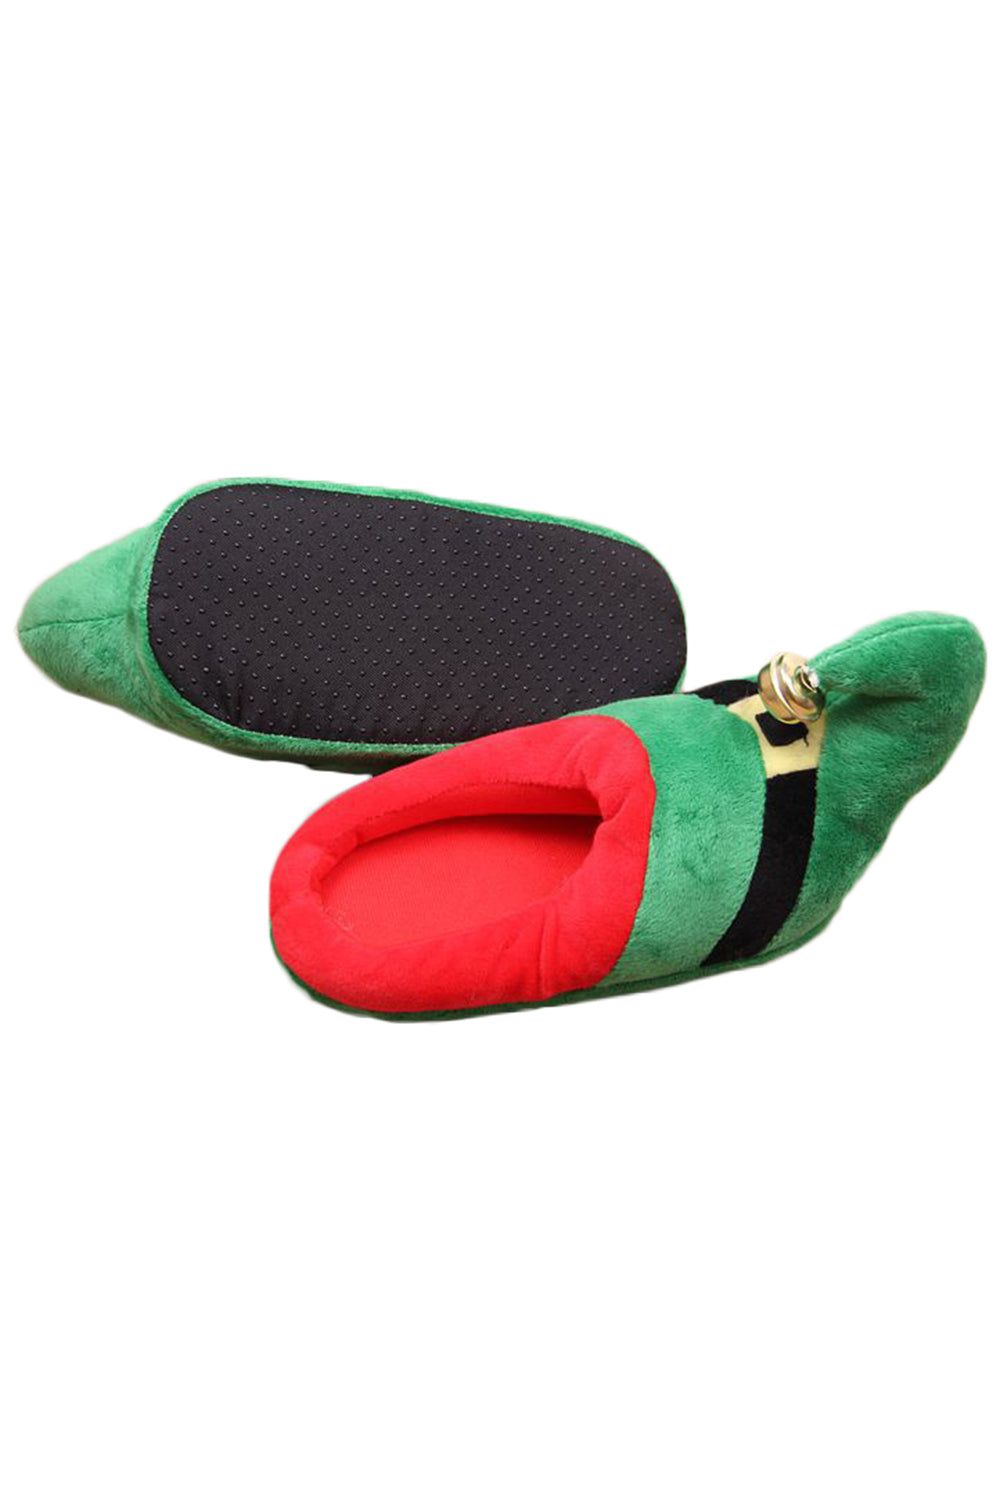 6a36cc25755 ... Kids Adult Christmas Cotton Home Slippers Winter Warm Indoor Soft Shoes